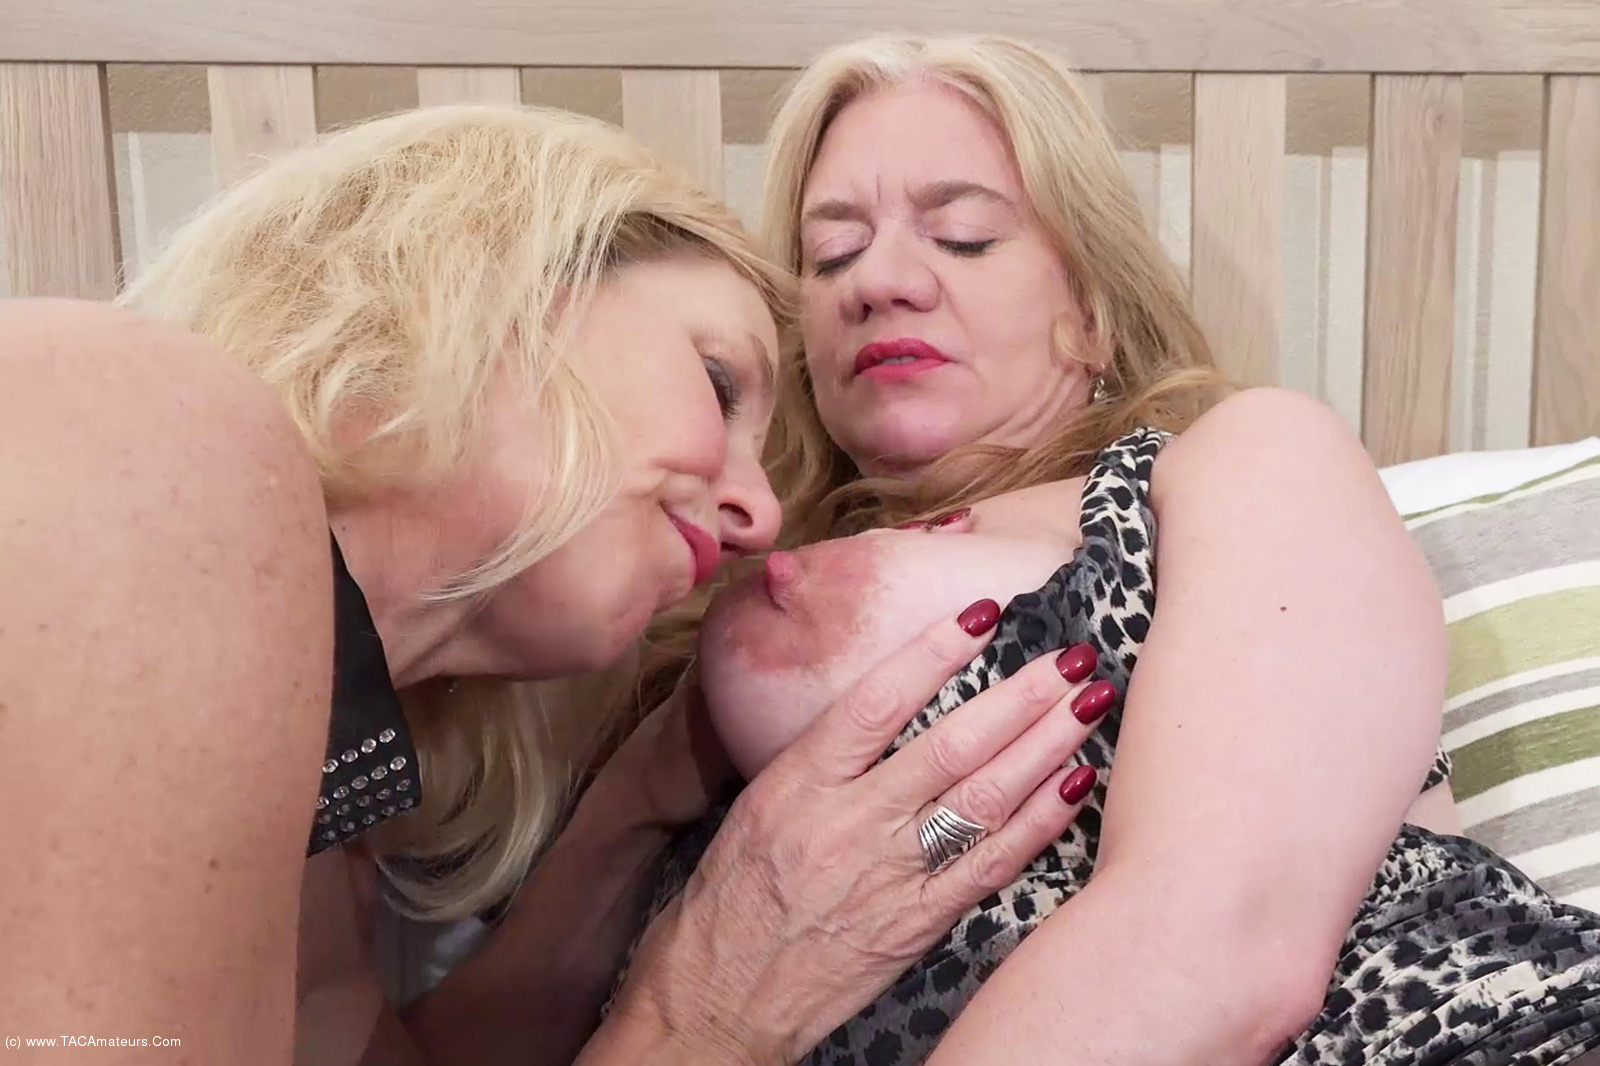 MollyMILF - On The Bed With Lily May Pt1 scene 1